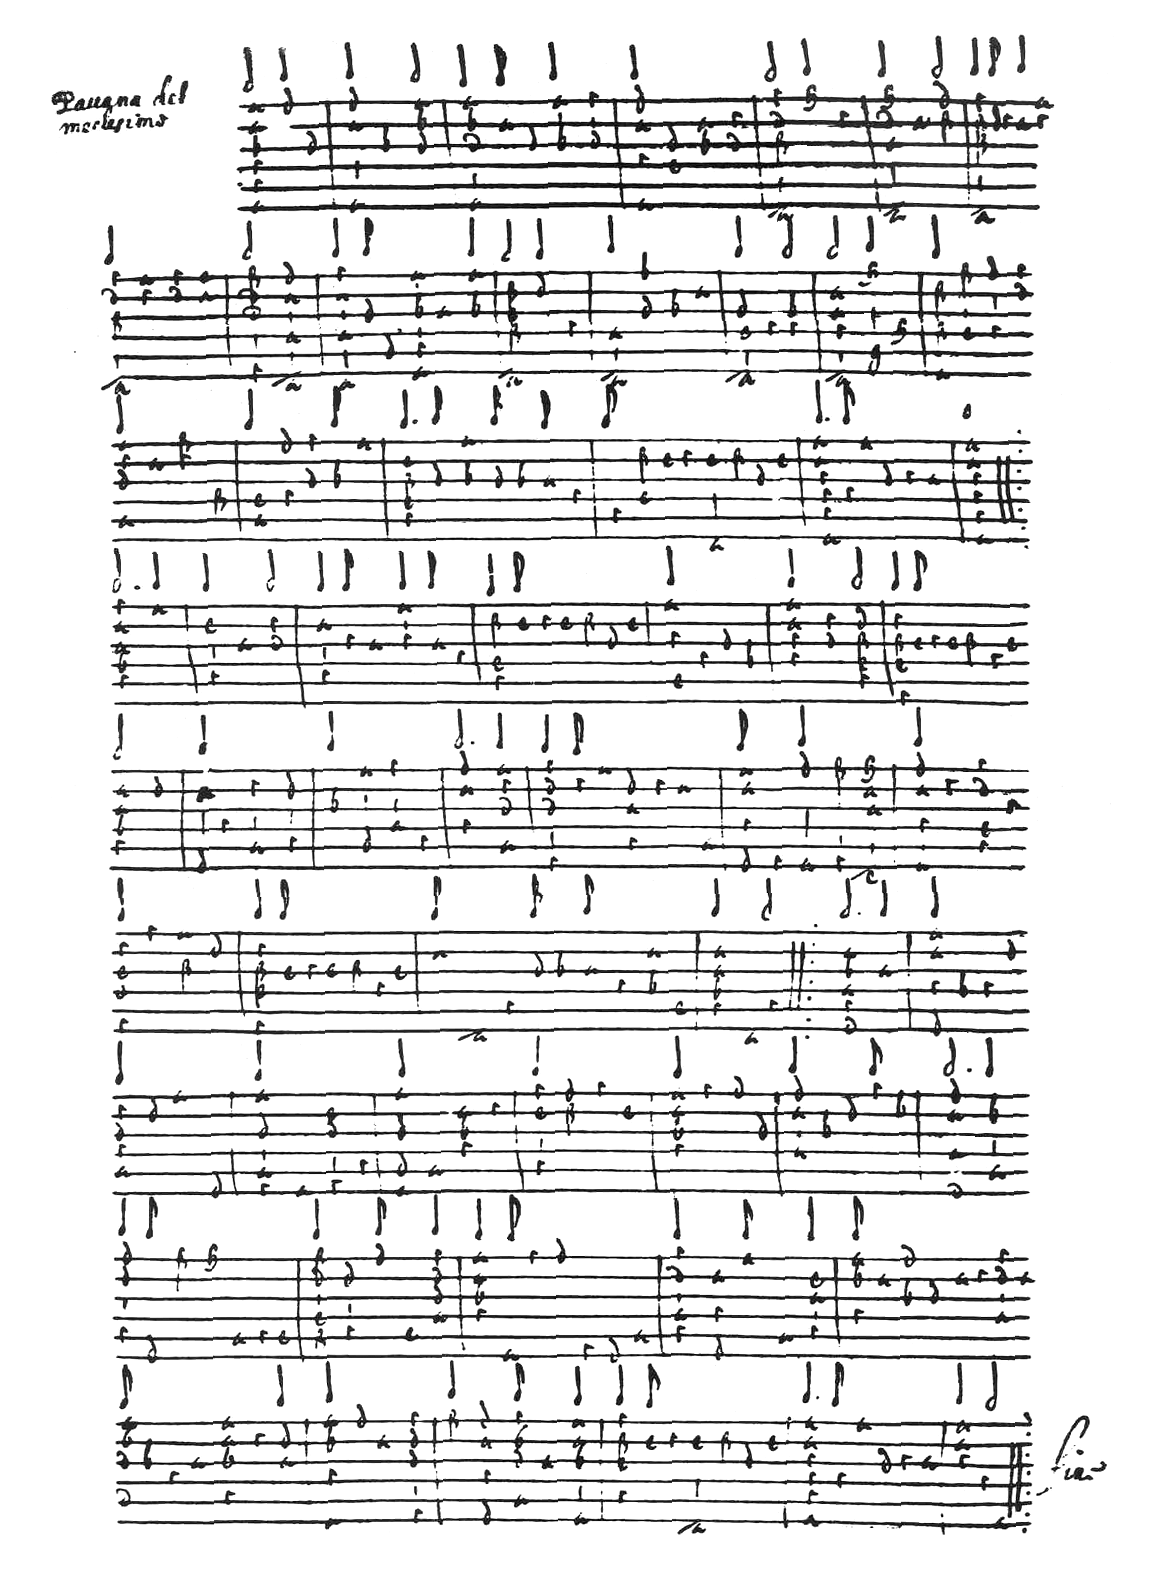 Where can I get back to the French lute TAB? | MuseScore